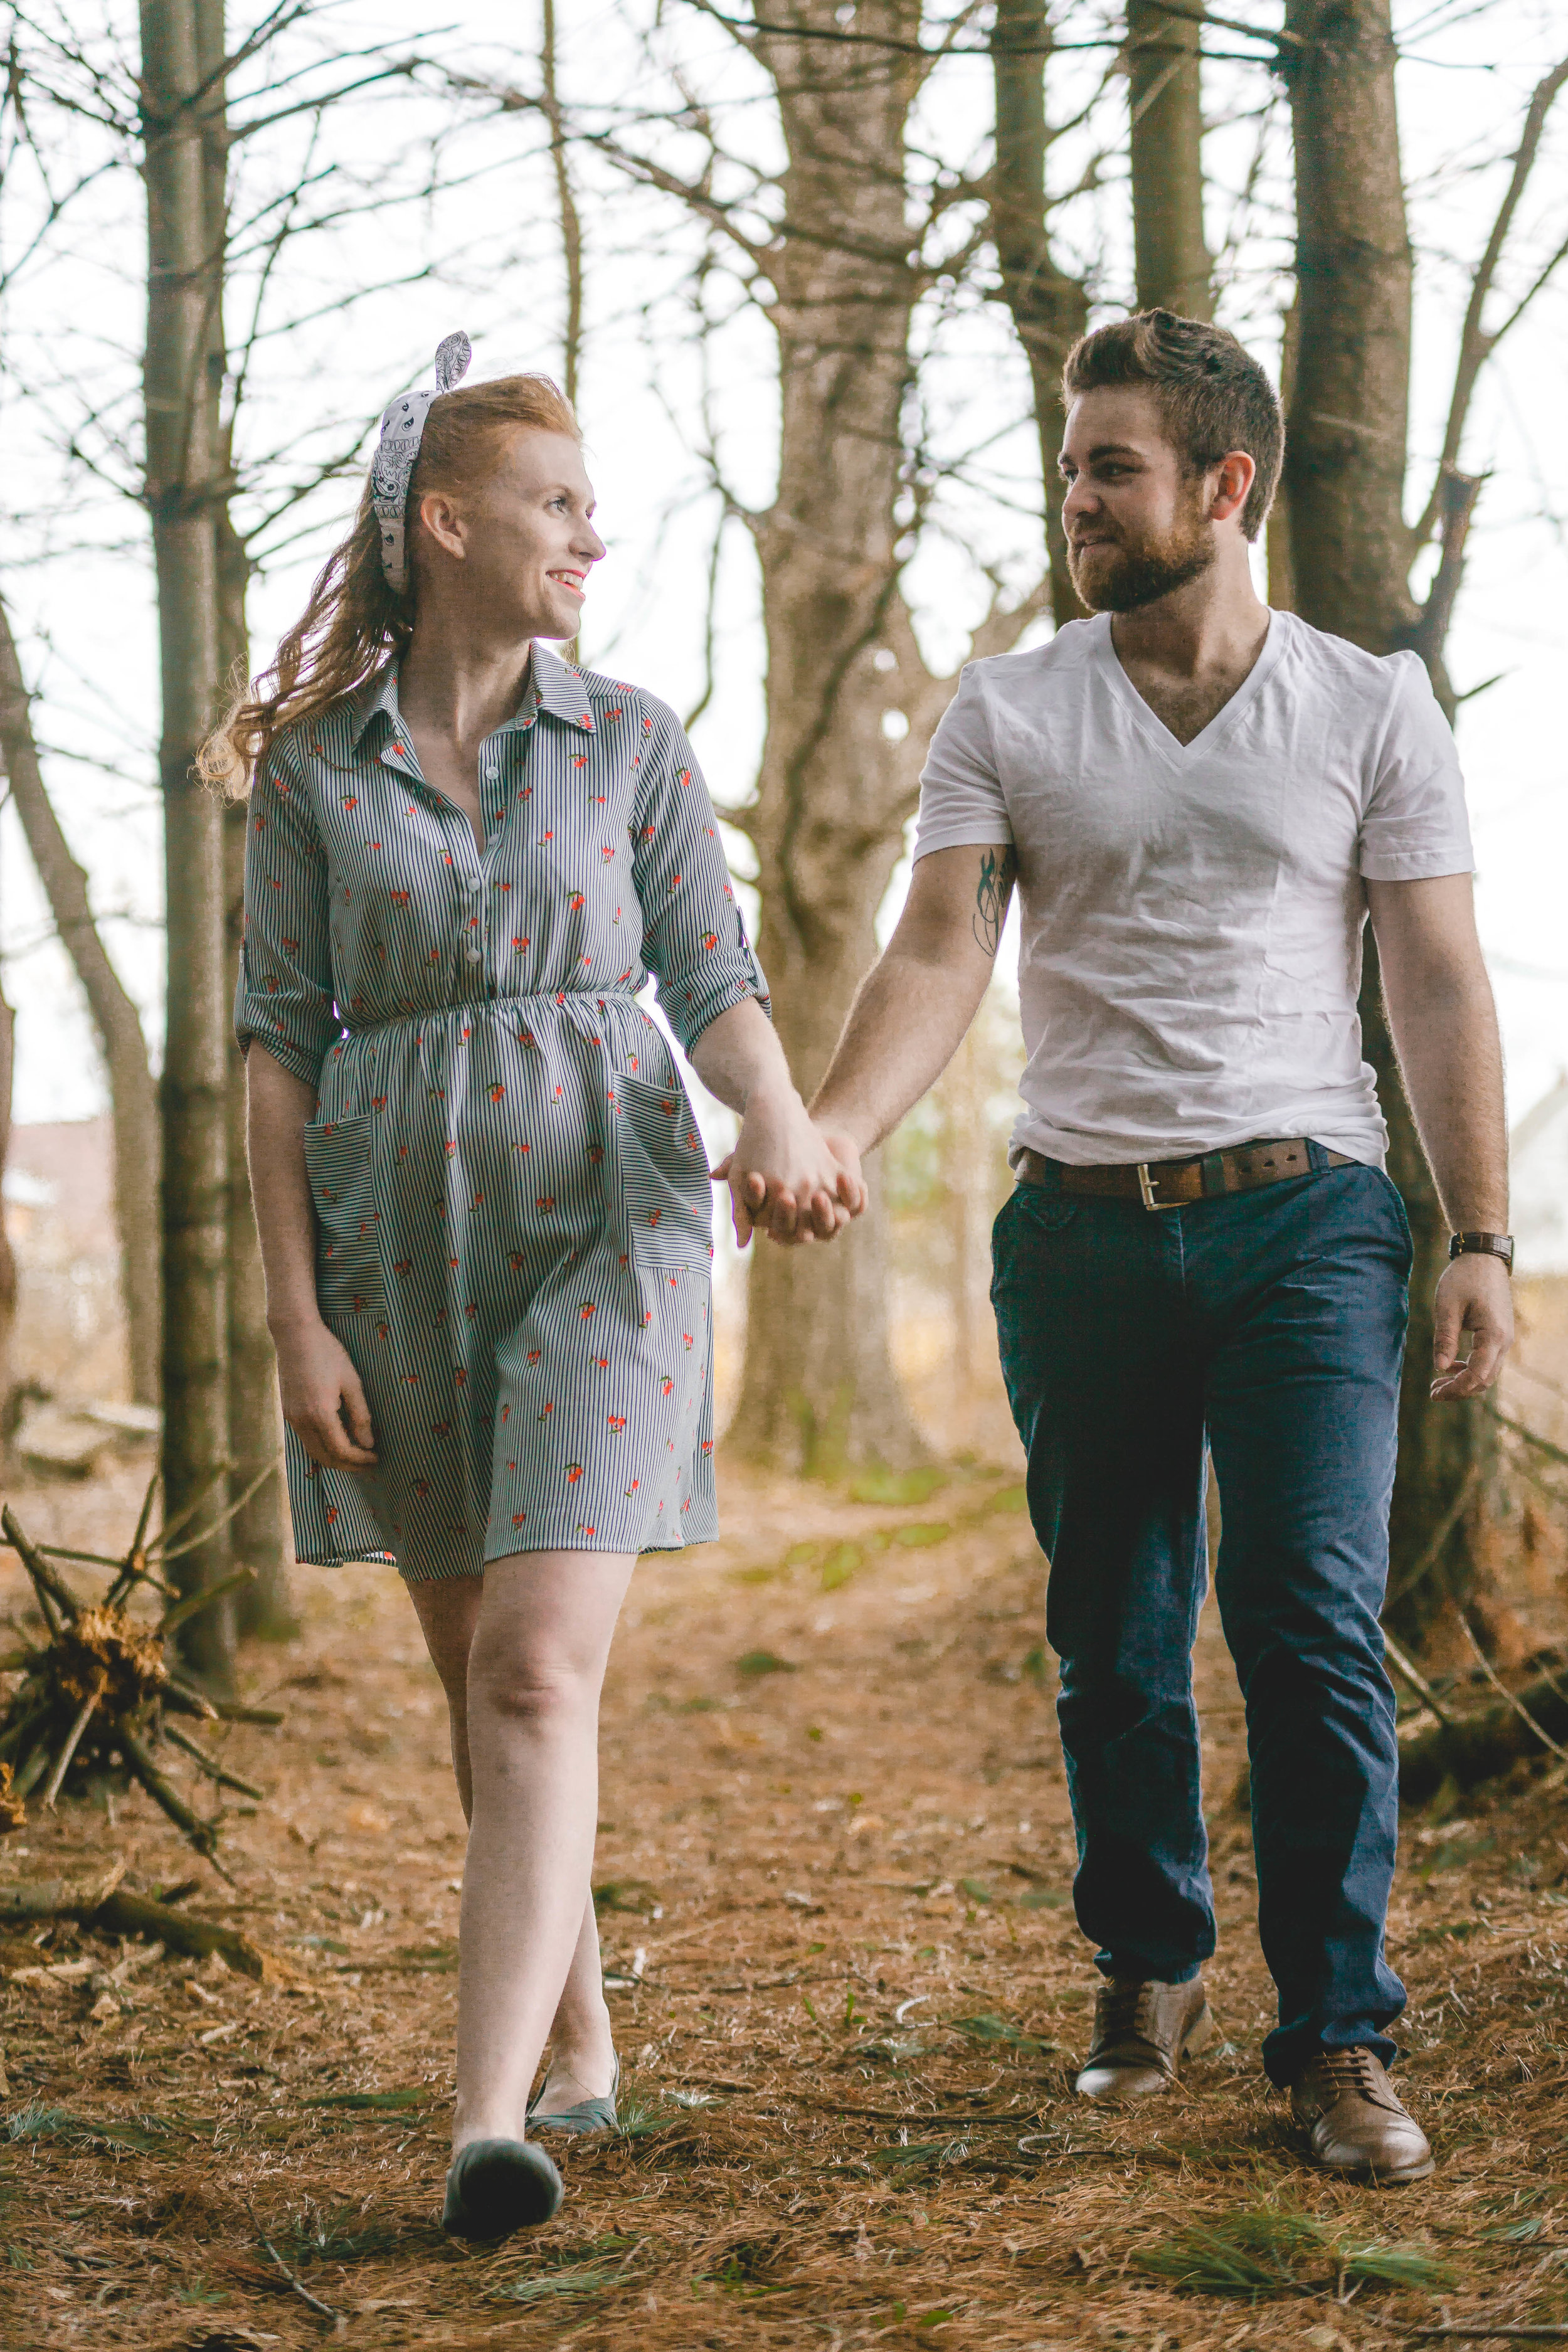 Amy D Photography- Barrie Wedding Photography- Muskoka Wedding Photography- Pinup Engagement- Engagement Photos- Barrie Engagement Photographer- Best Wedding Photographers-42.jpg